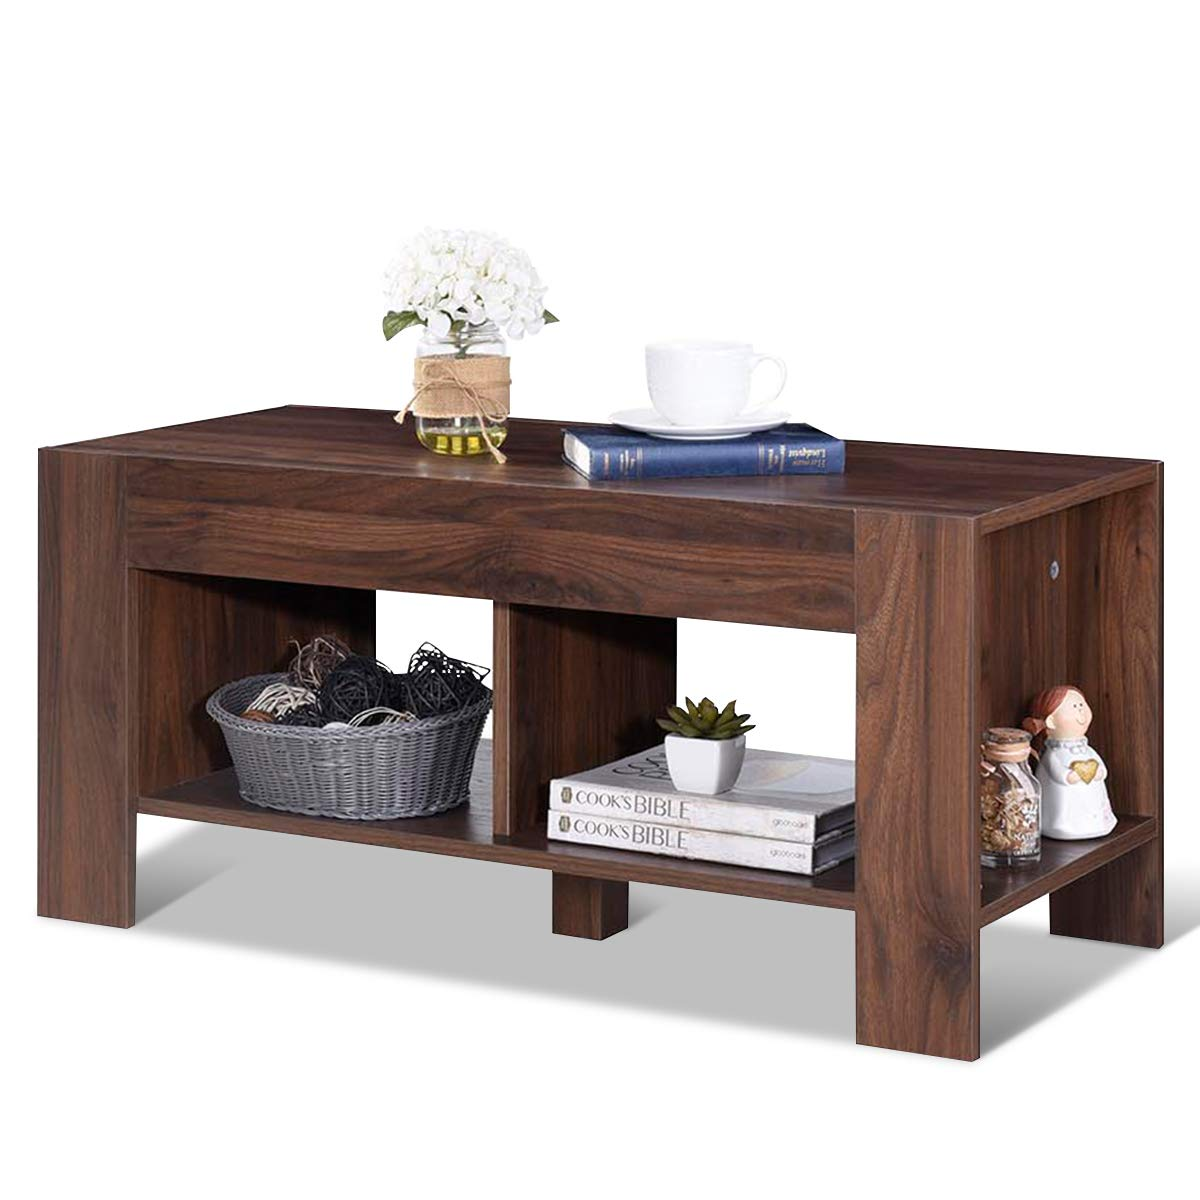 Tangkula Coffee Table, Tea Table with Storage Shelf, Sofa Table for Home Living Room Office Furniture, 2-Tier Coffee Table (Brown) by Tangkula